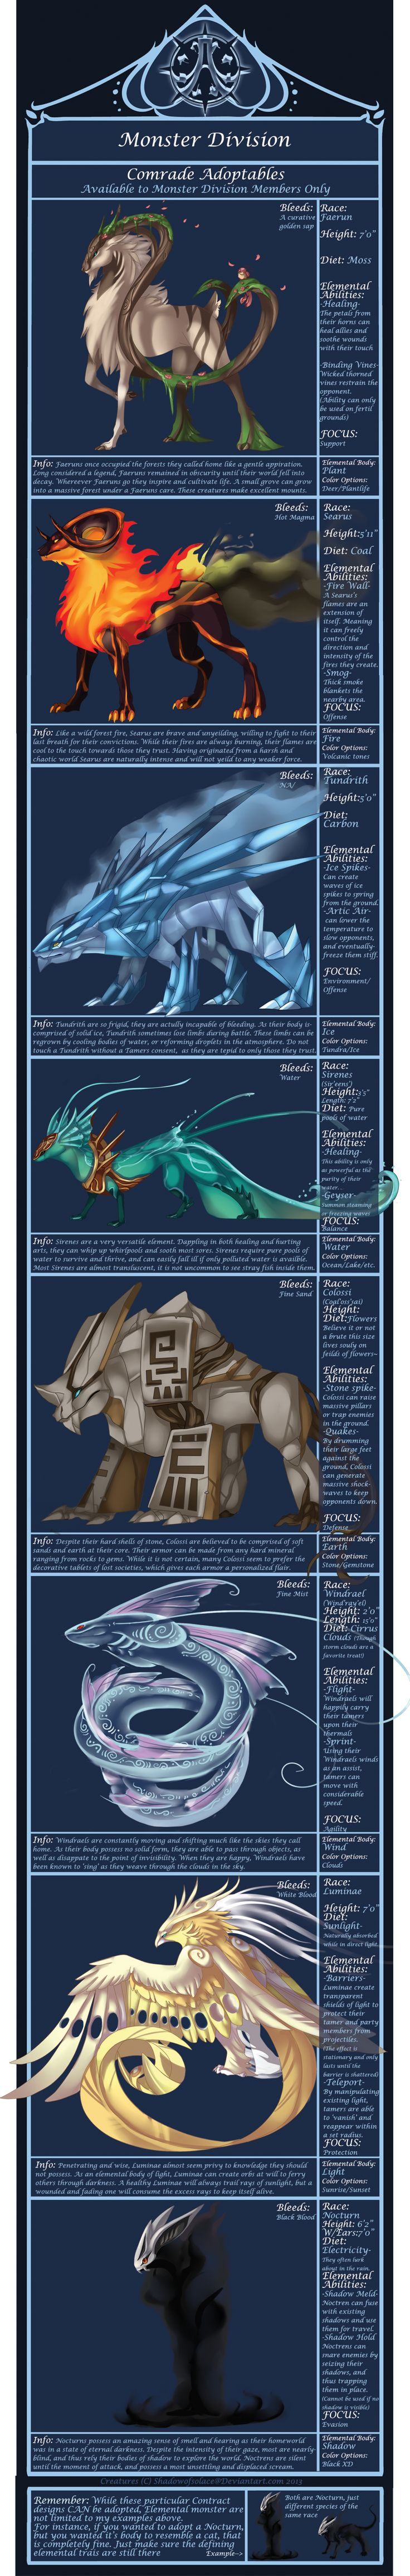 AE_Contract Adopts by ShadowOfSolace.deviantart.com on @DeviantArt